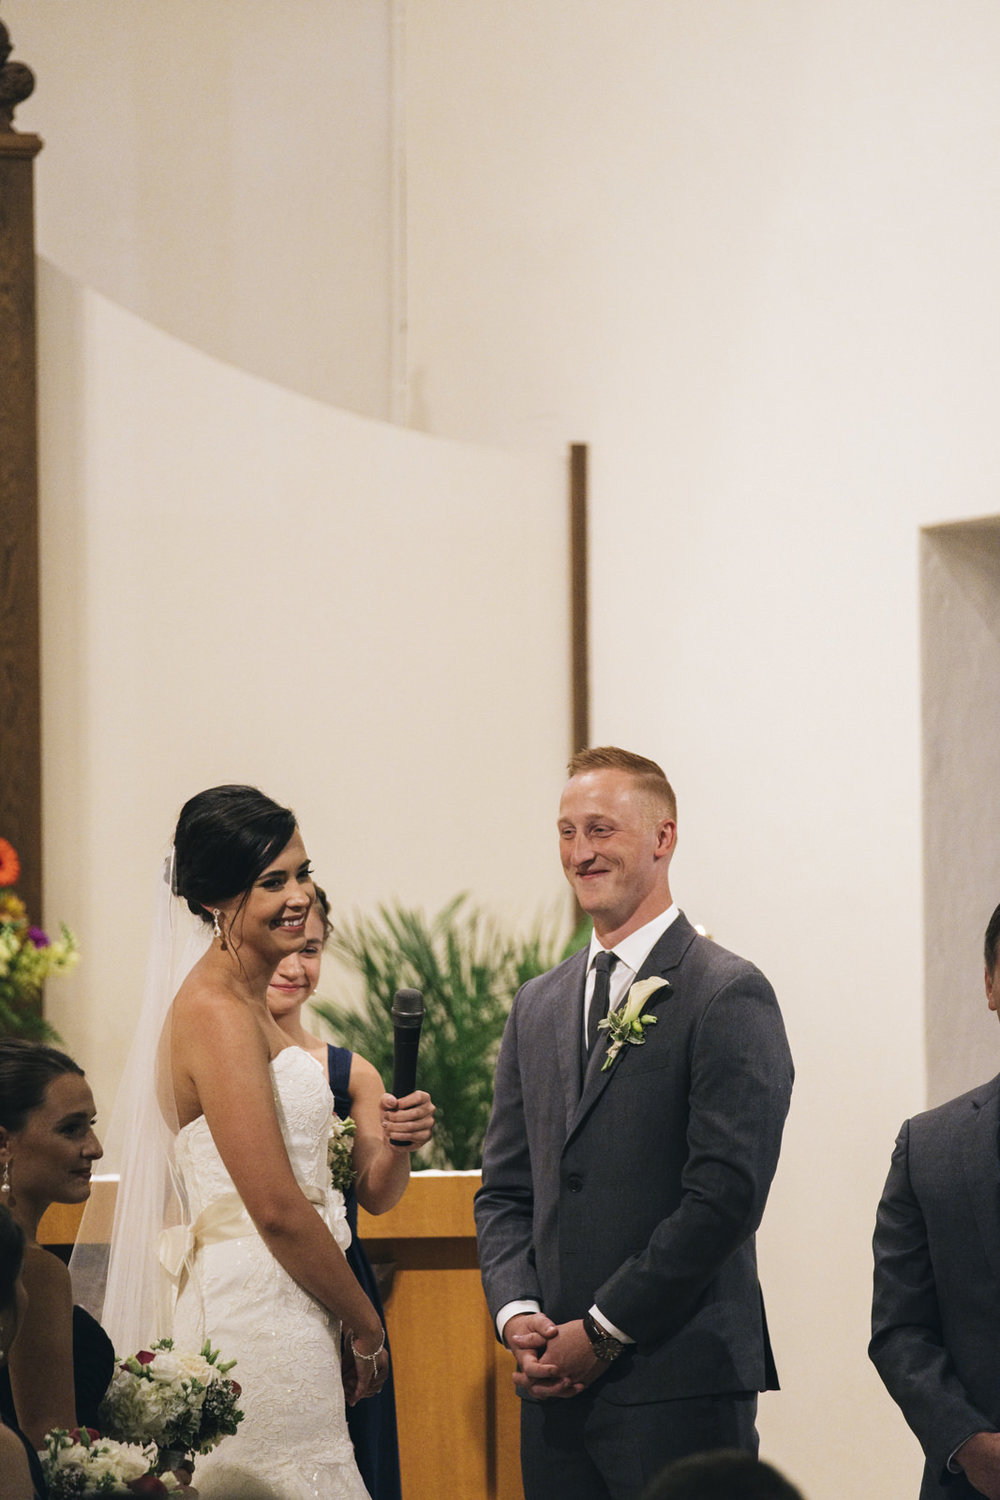 Bride and groom smile and laugh during their wedding ceremony in northern Ohio.